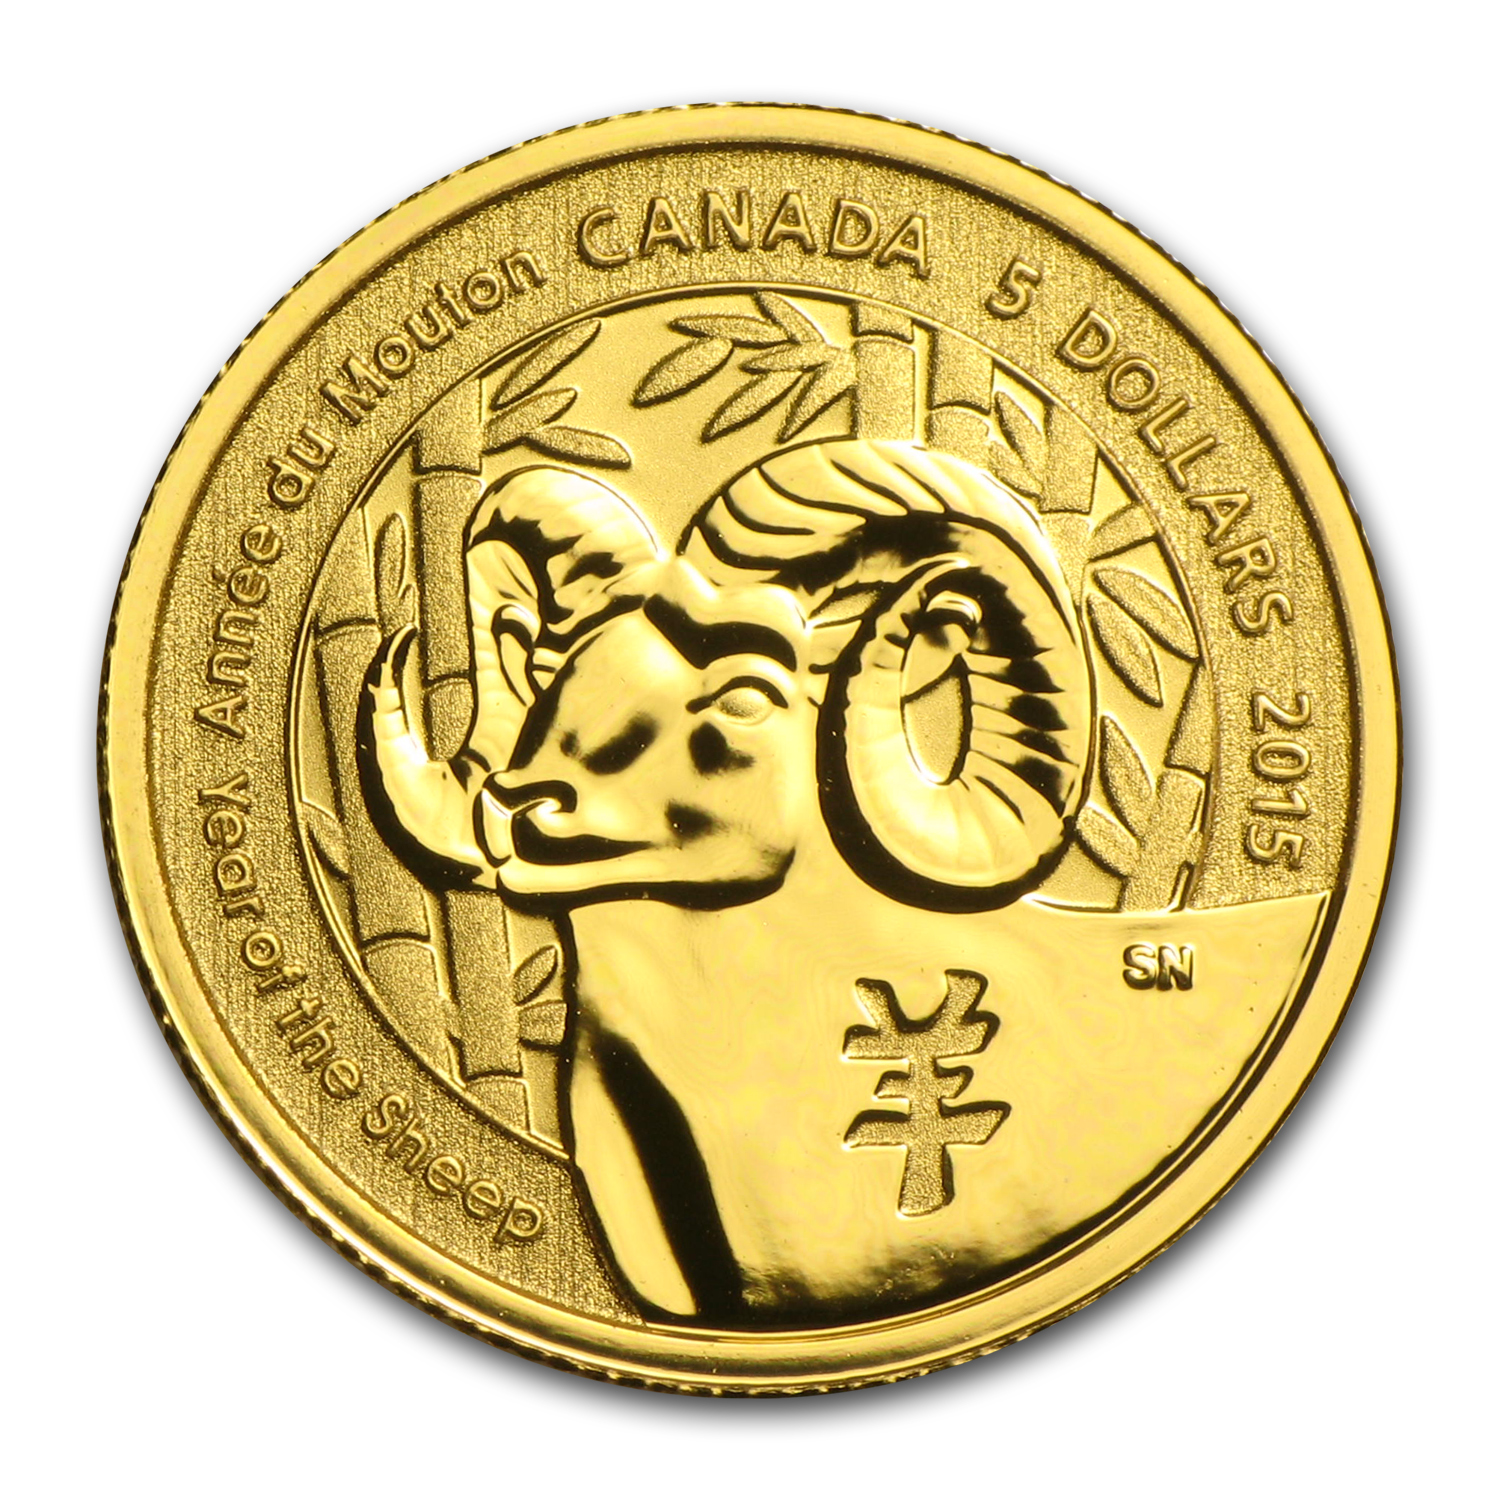 2015 Canada 1/10 oz Gold $5 Lunar Year of the Sheep